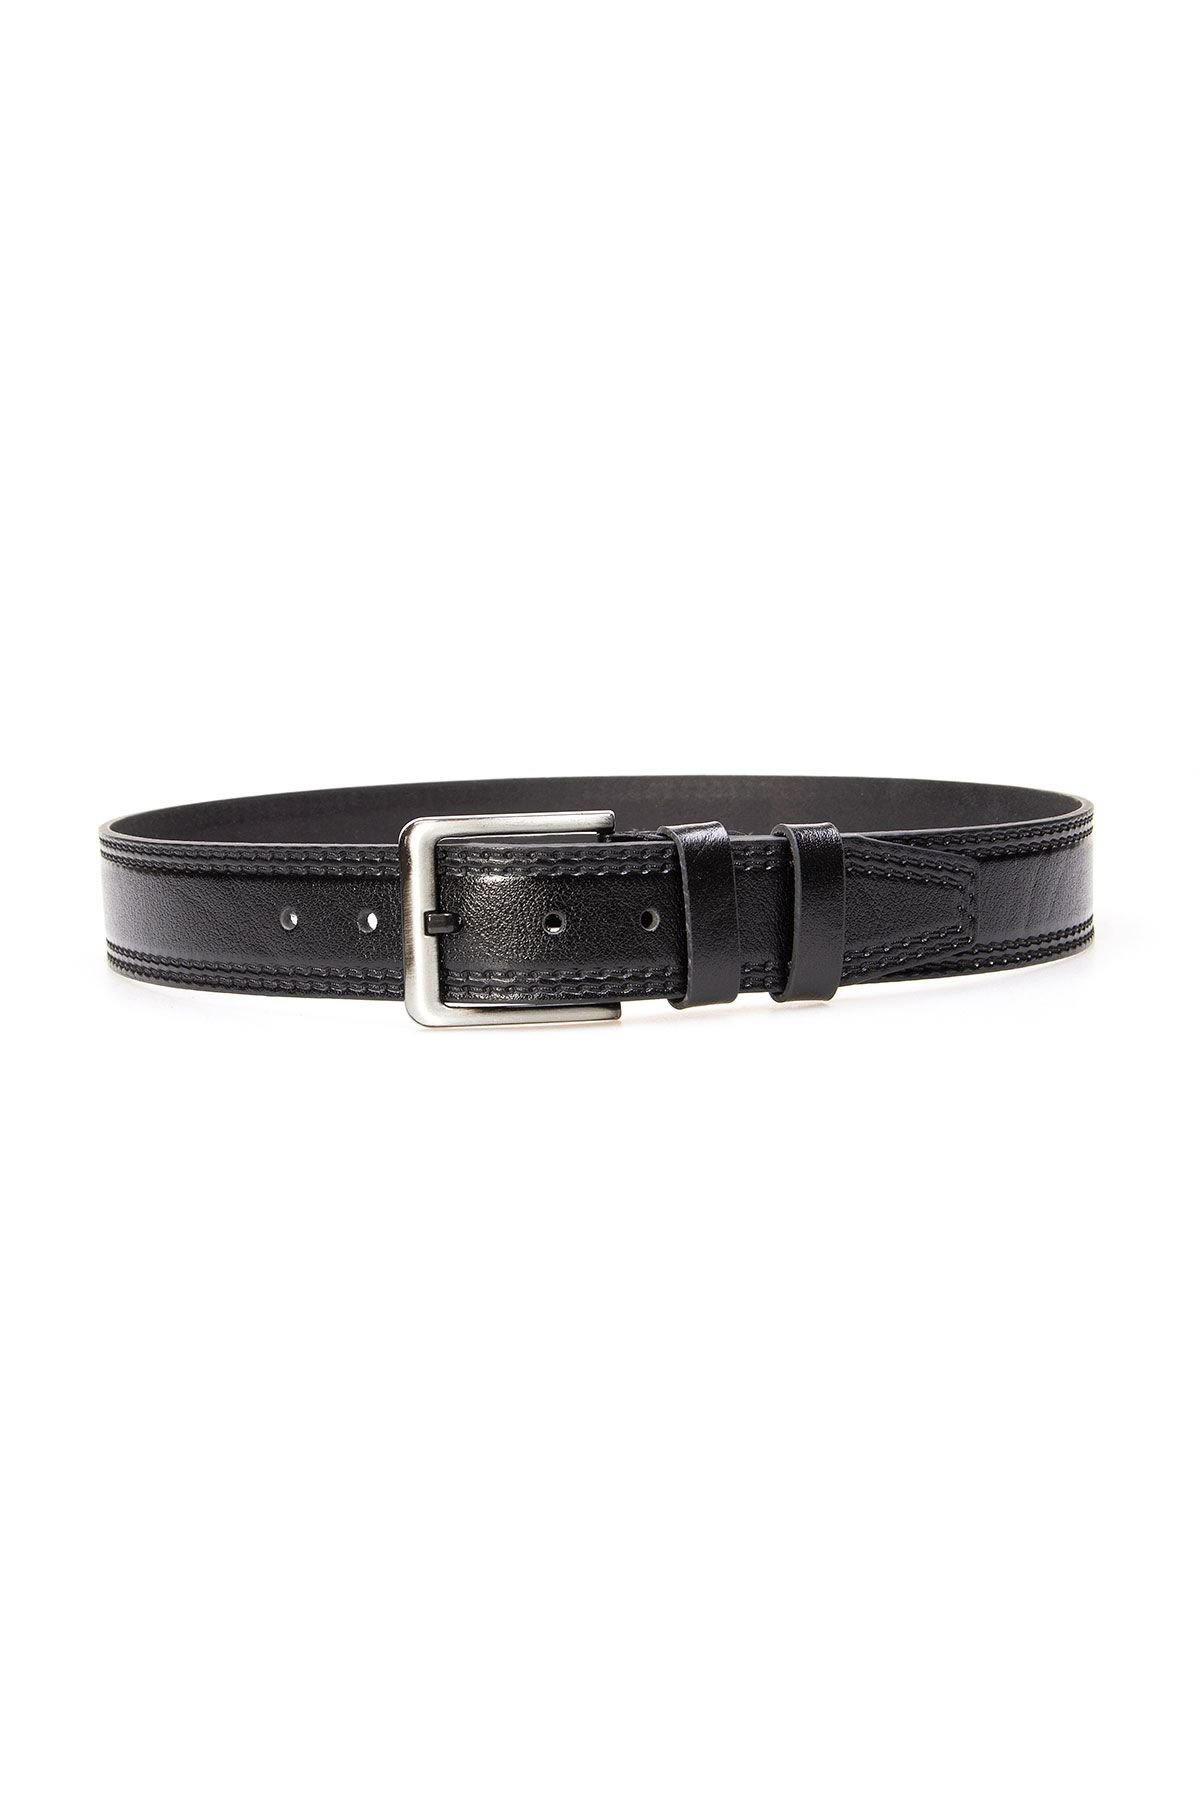 Pegia Genuine Leather Men's Belt 19KMR01 Black